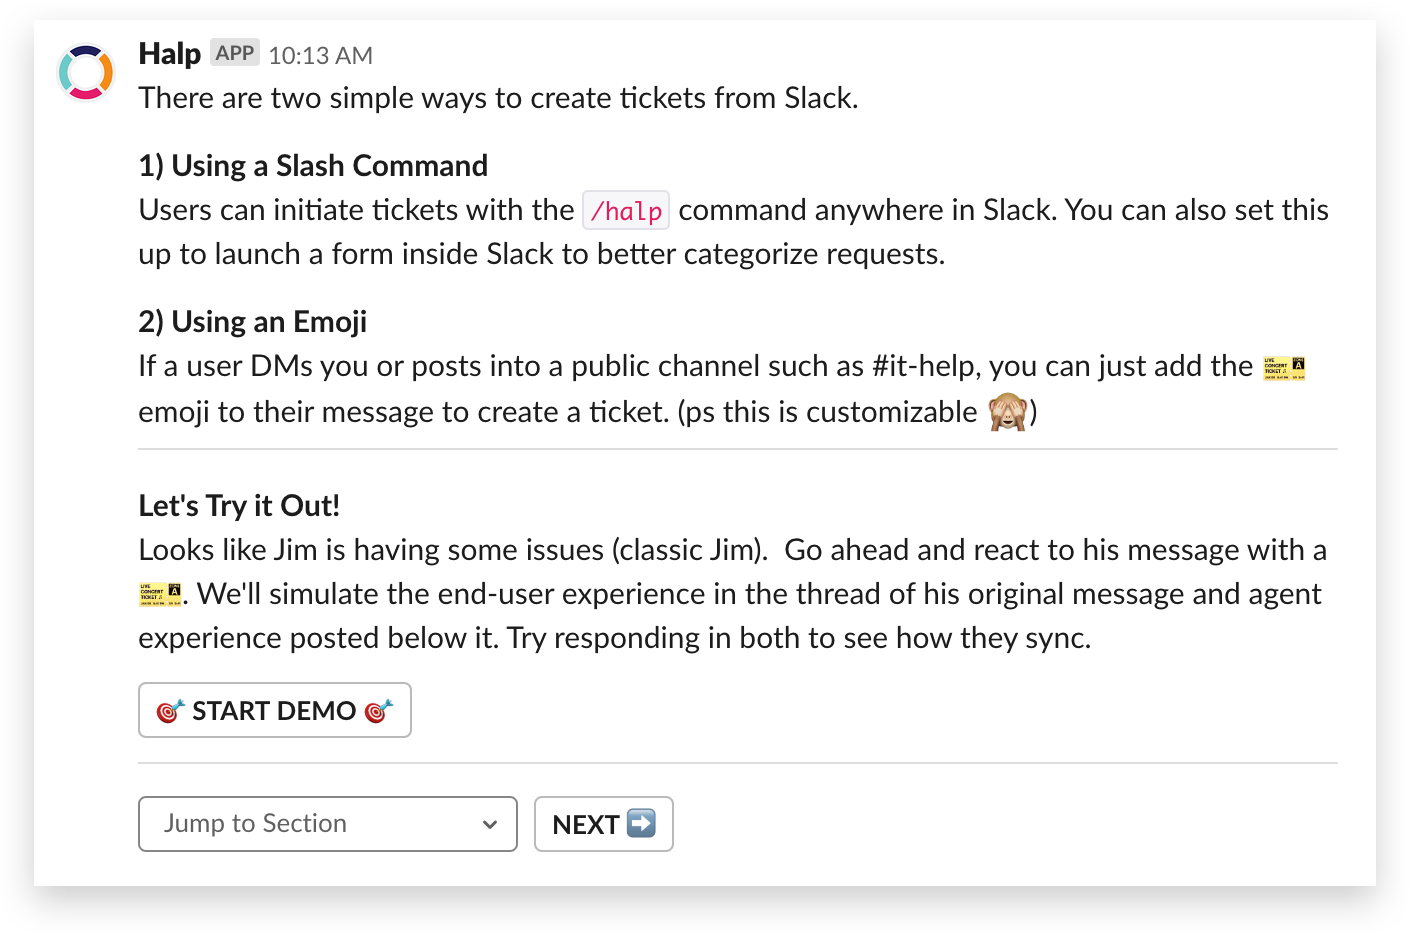 How to create a self-serve ticket in Slack with Halp